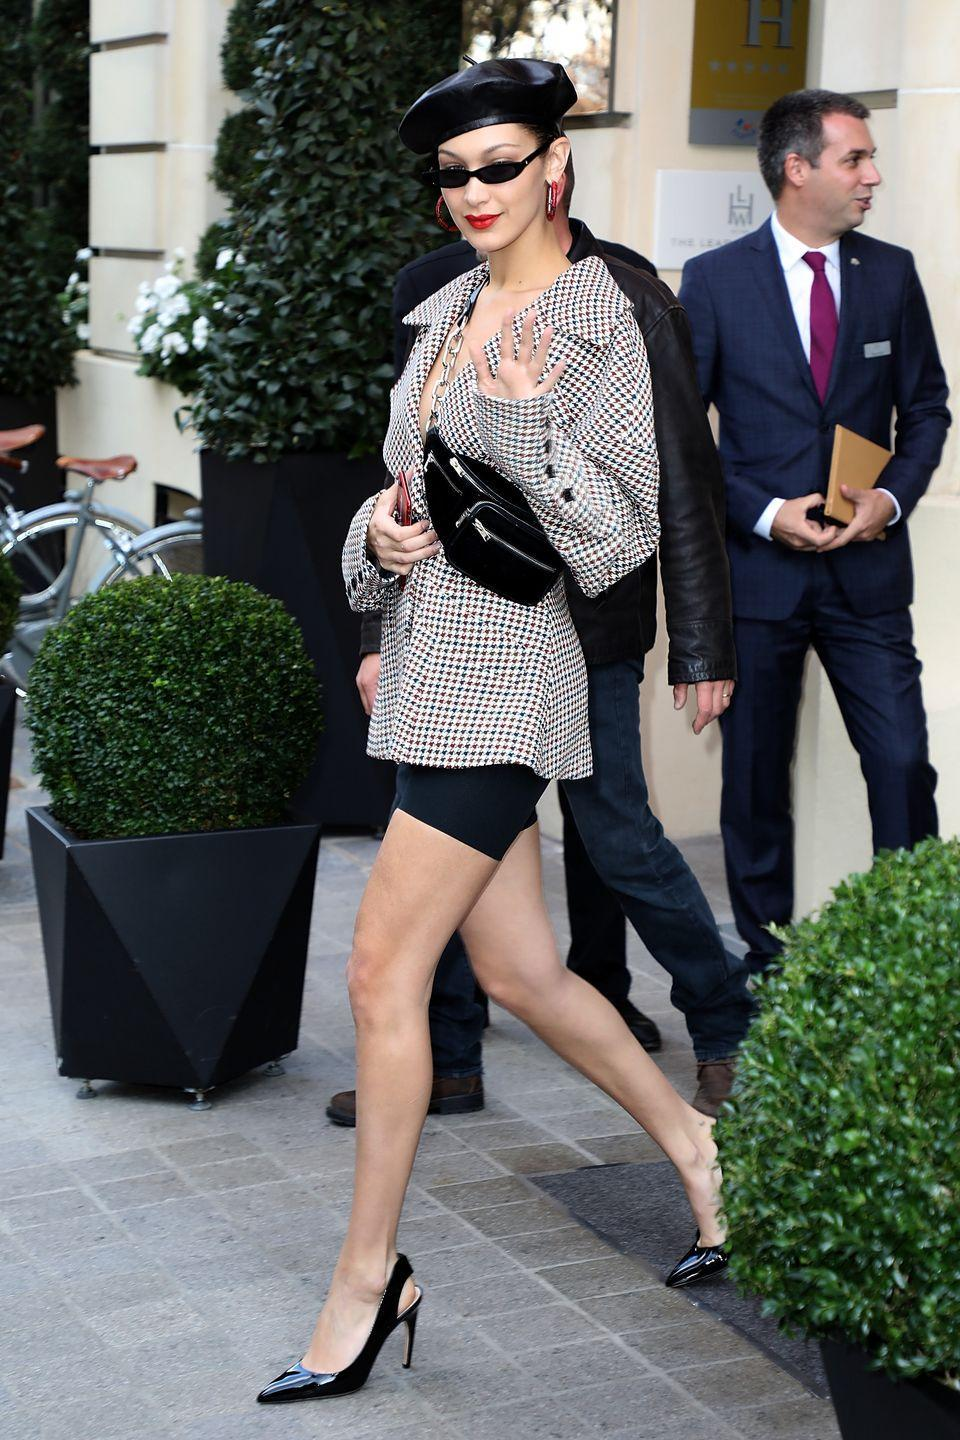 <p>In a leather beret, thin black sunglasses by Roberi & Fraud, red hoop earrings, Claudia Li blazer, Alexander Wang fanny pack, biker shorts, and Christian Dior patent leather slingback pumps while out in Paris. </p>